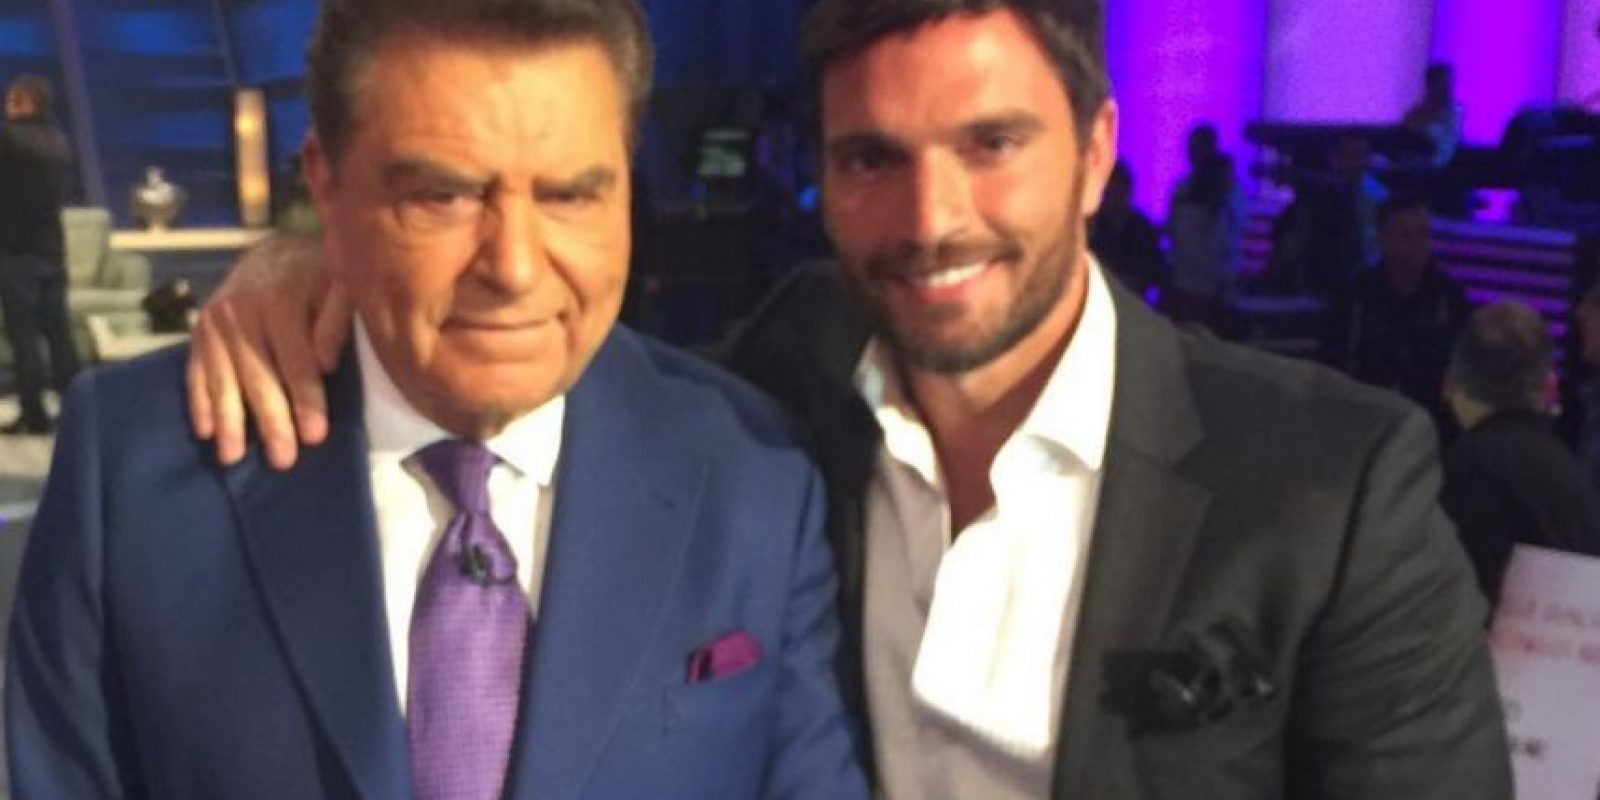 Foto: Vía instagram.com/juliangil/